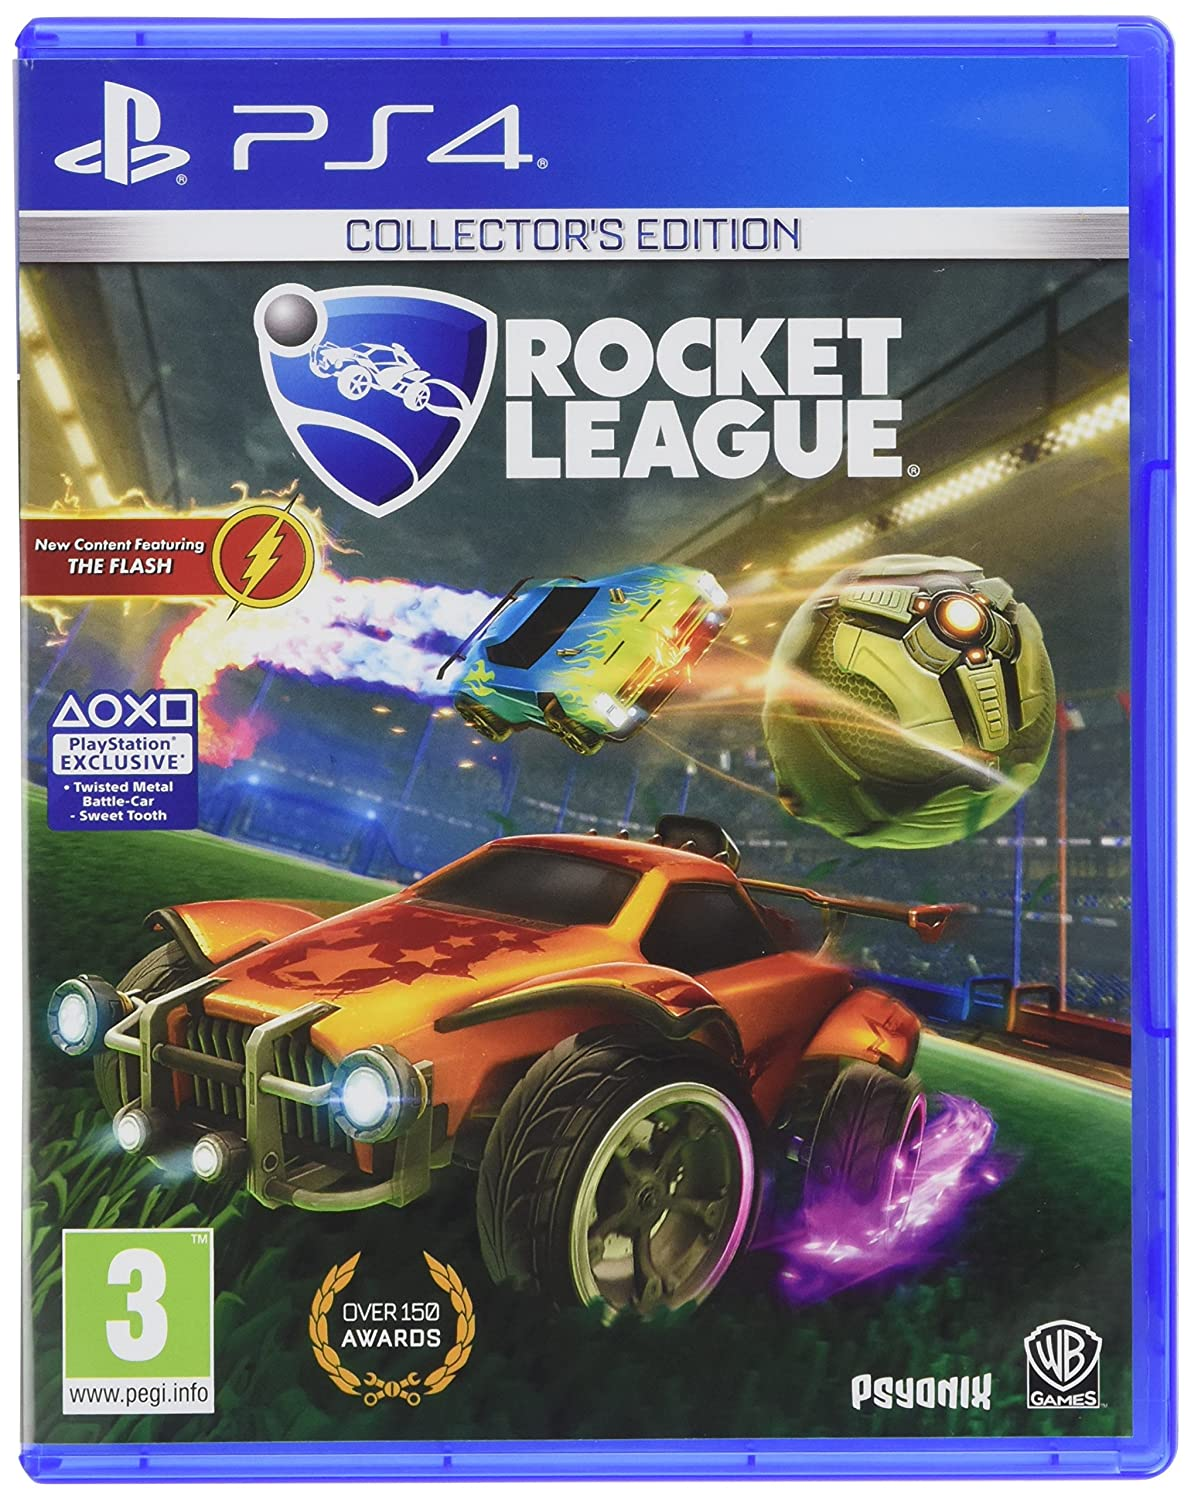 Rocket League Collectors Edition Playstation 4 Ps4 Switch Overcooked 2 English Pal Games Video